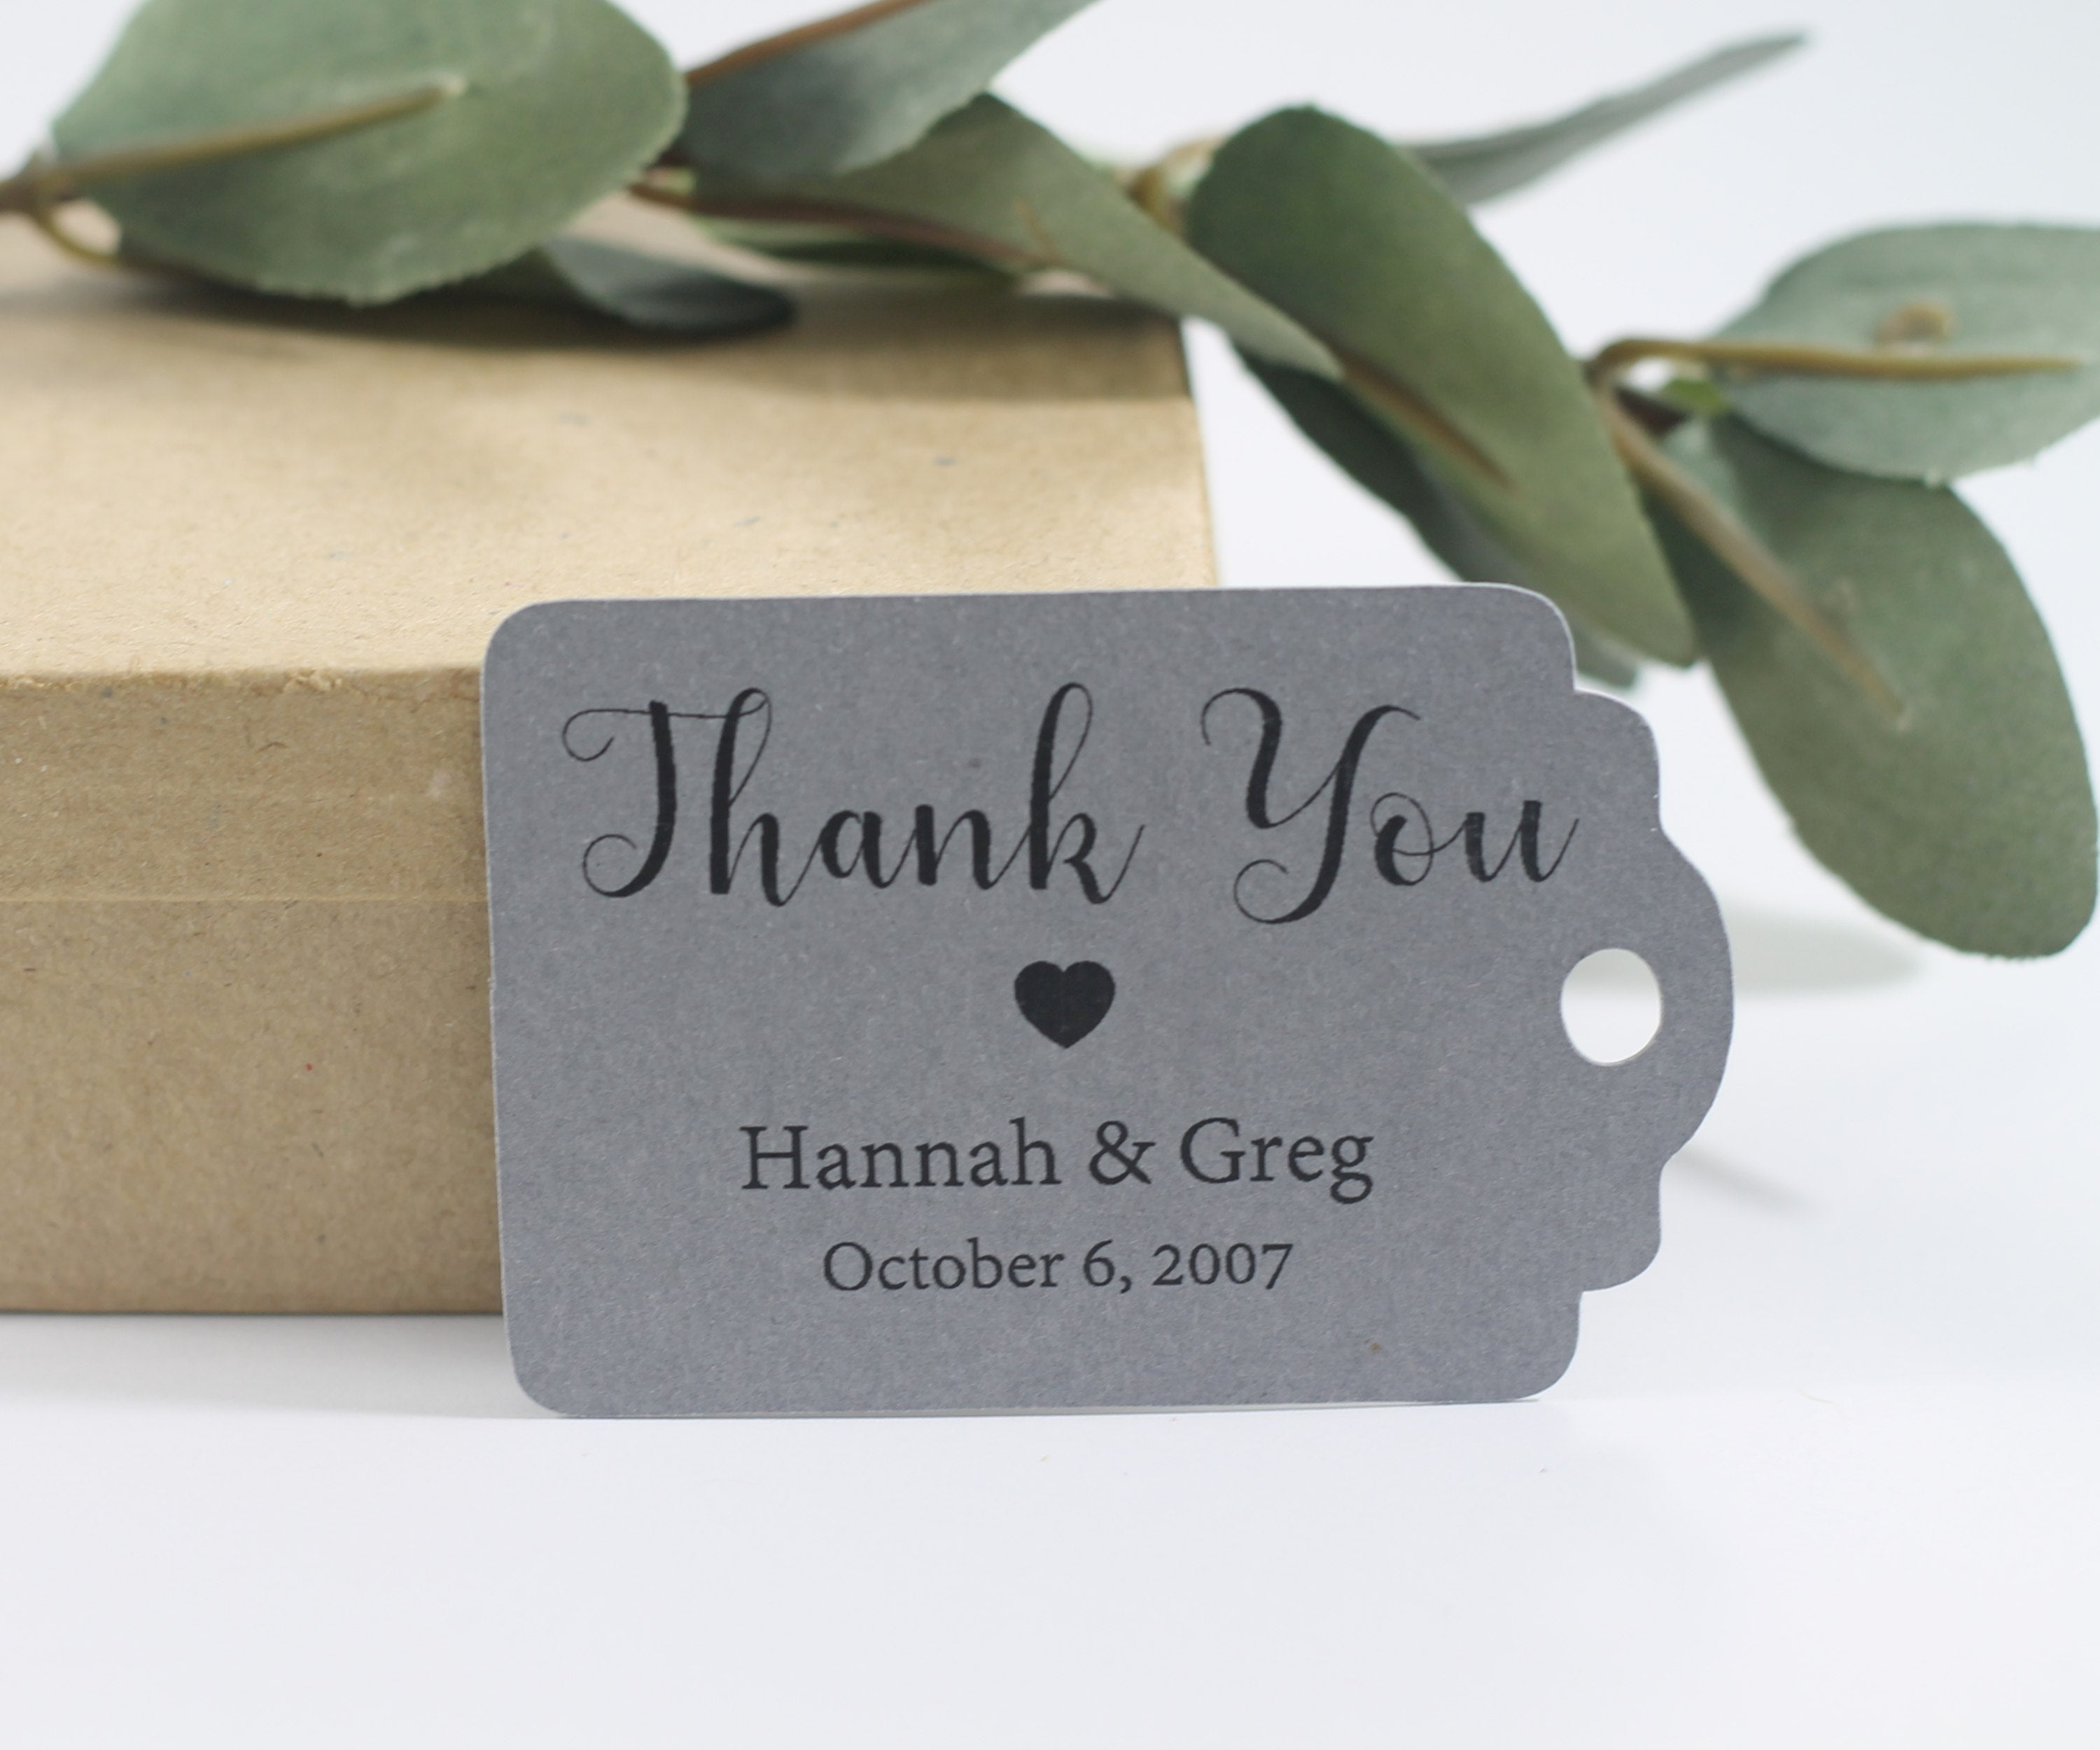 Personalized Wedding Tags - Wedding Gift Tags in Grey - 20pc-Wedding Tags-The Paper Medley